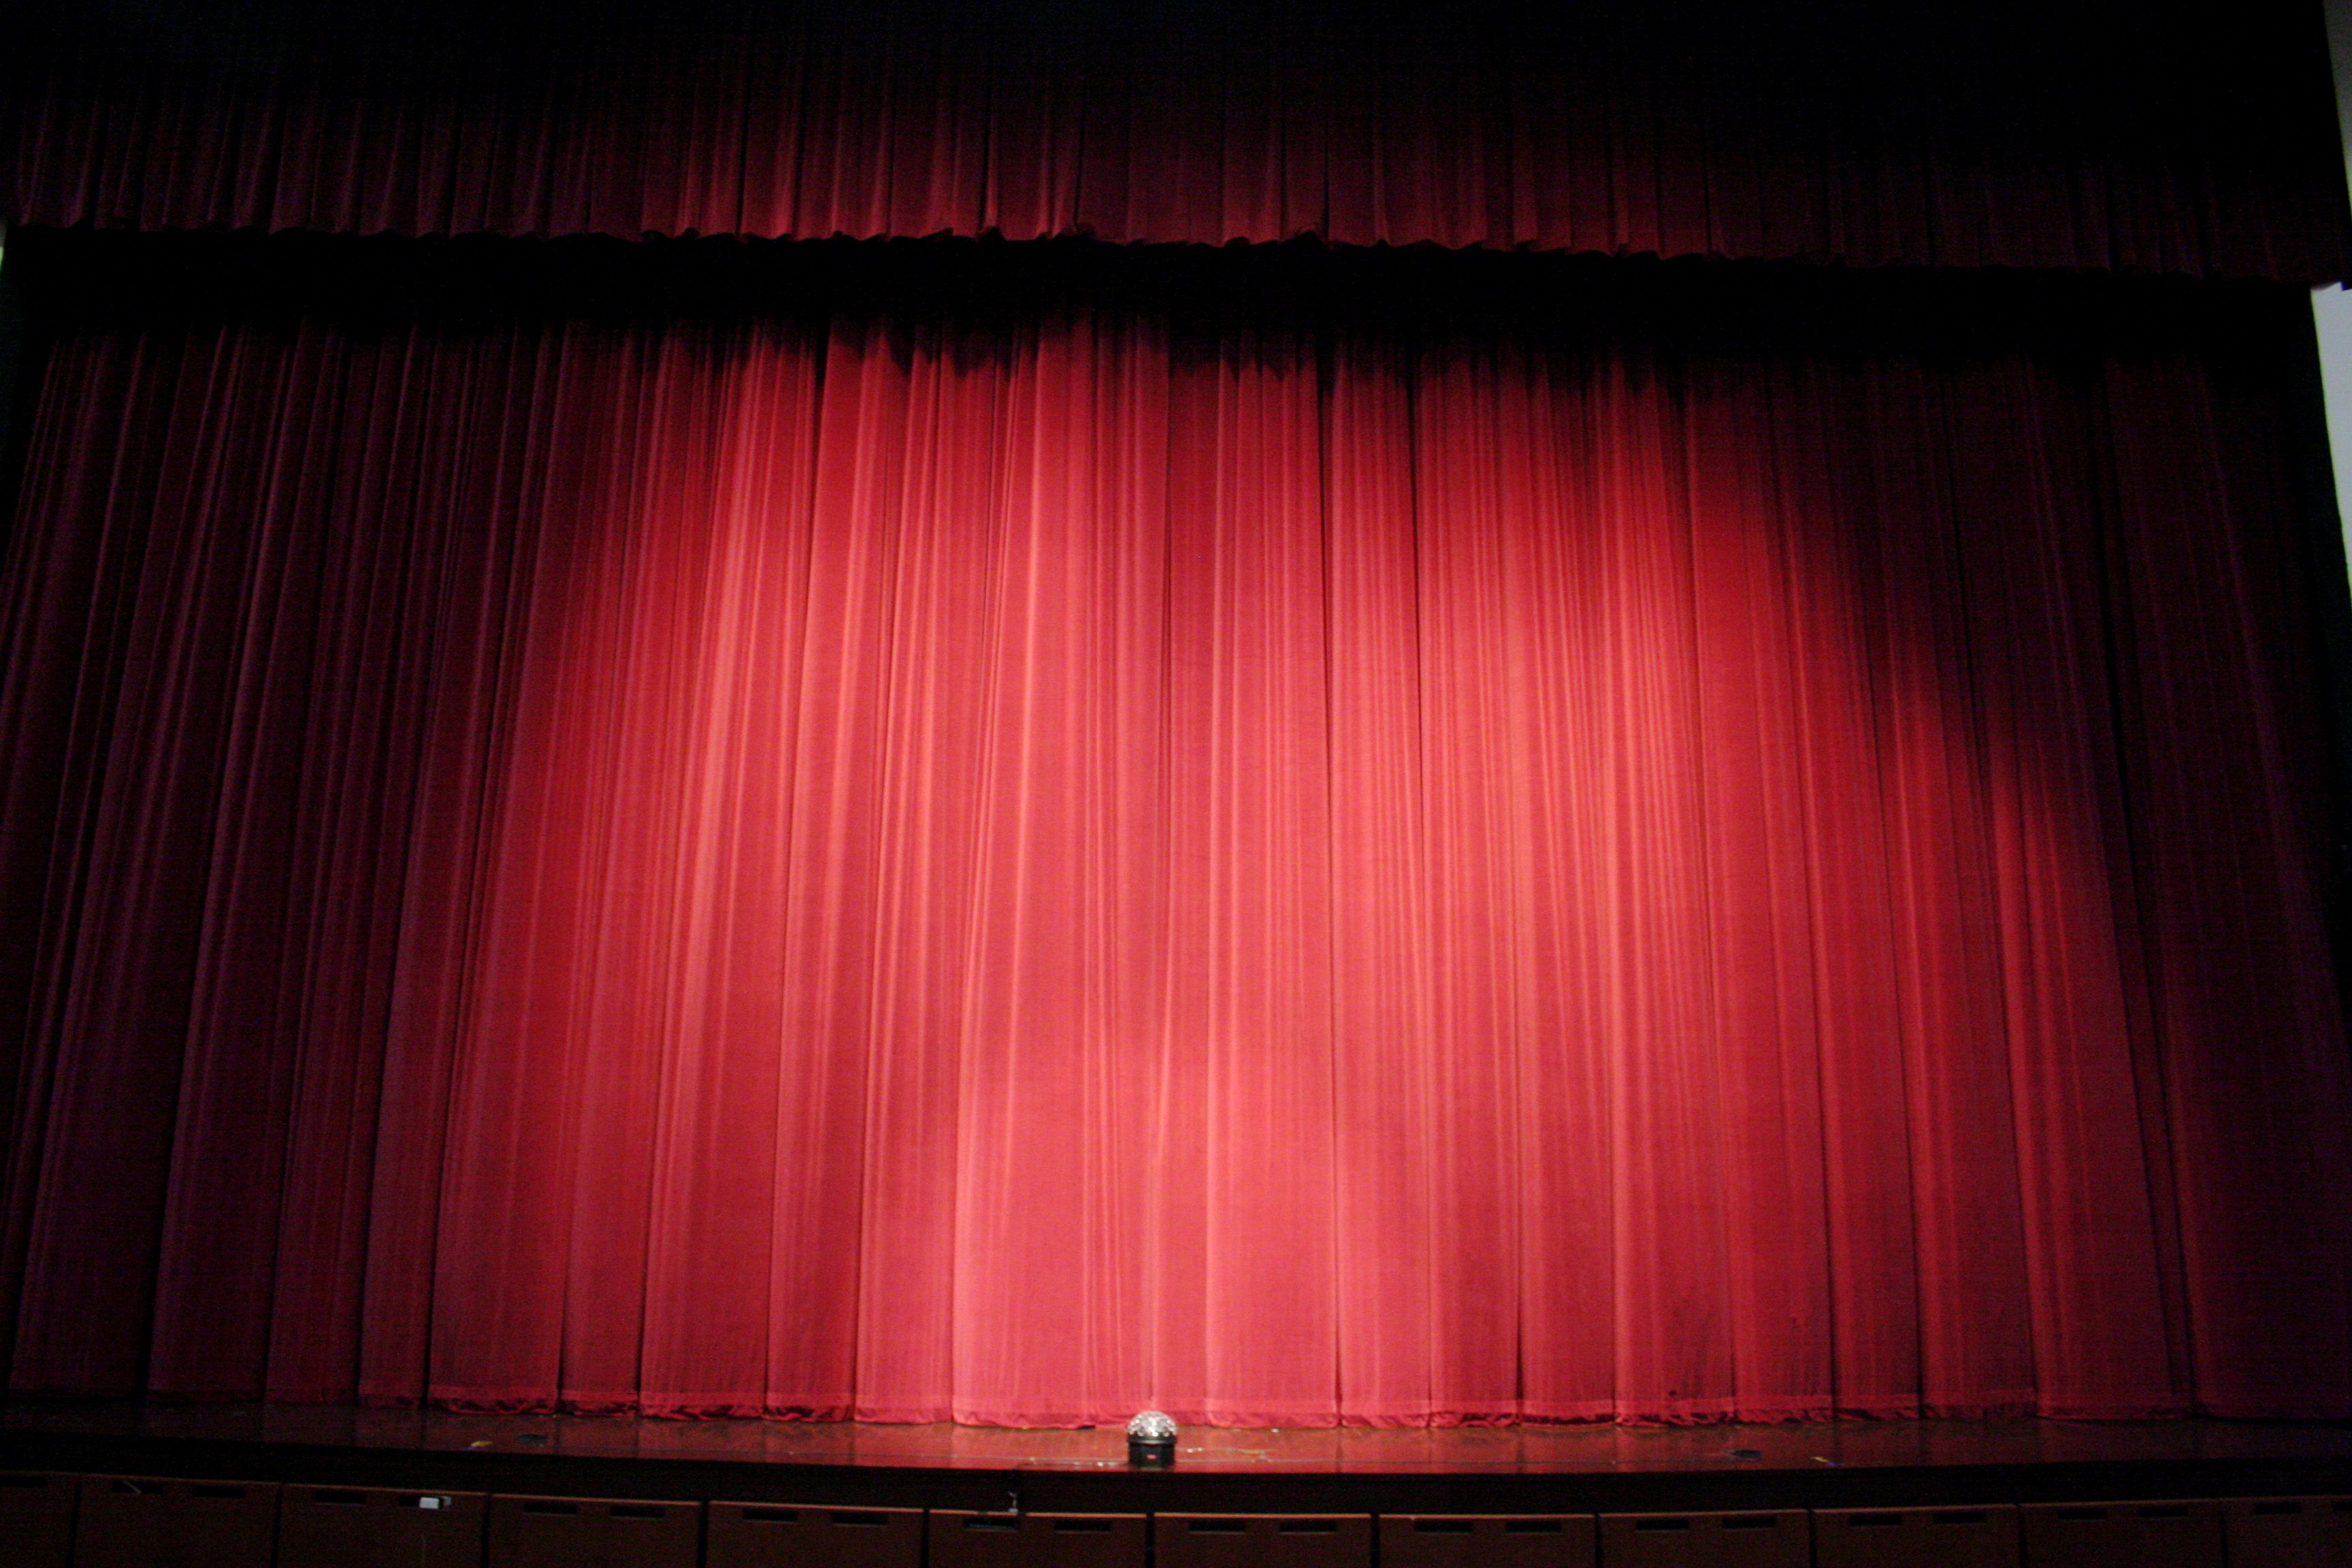 behind curtain made curtains wood velvet old columns red in stock the photo